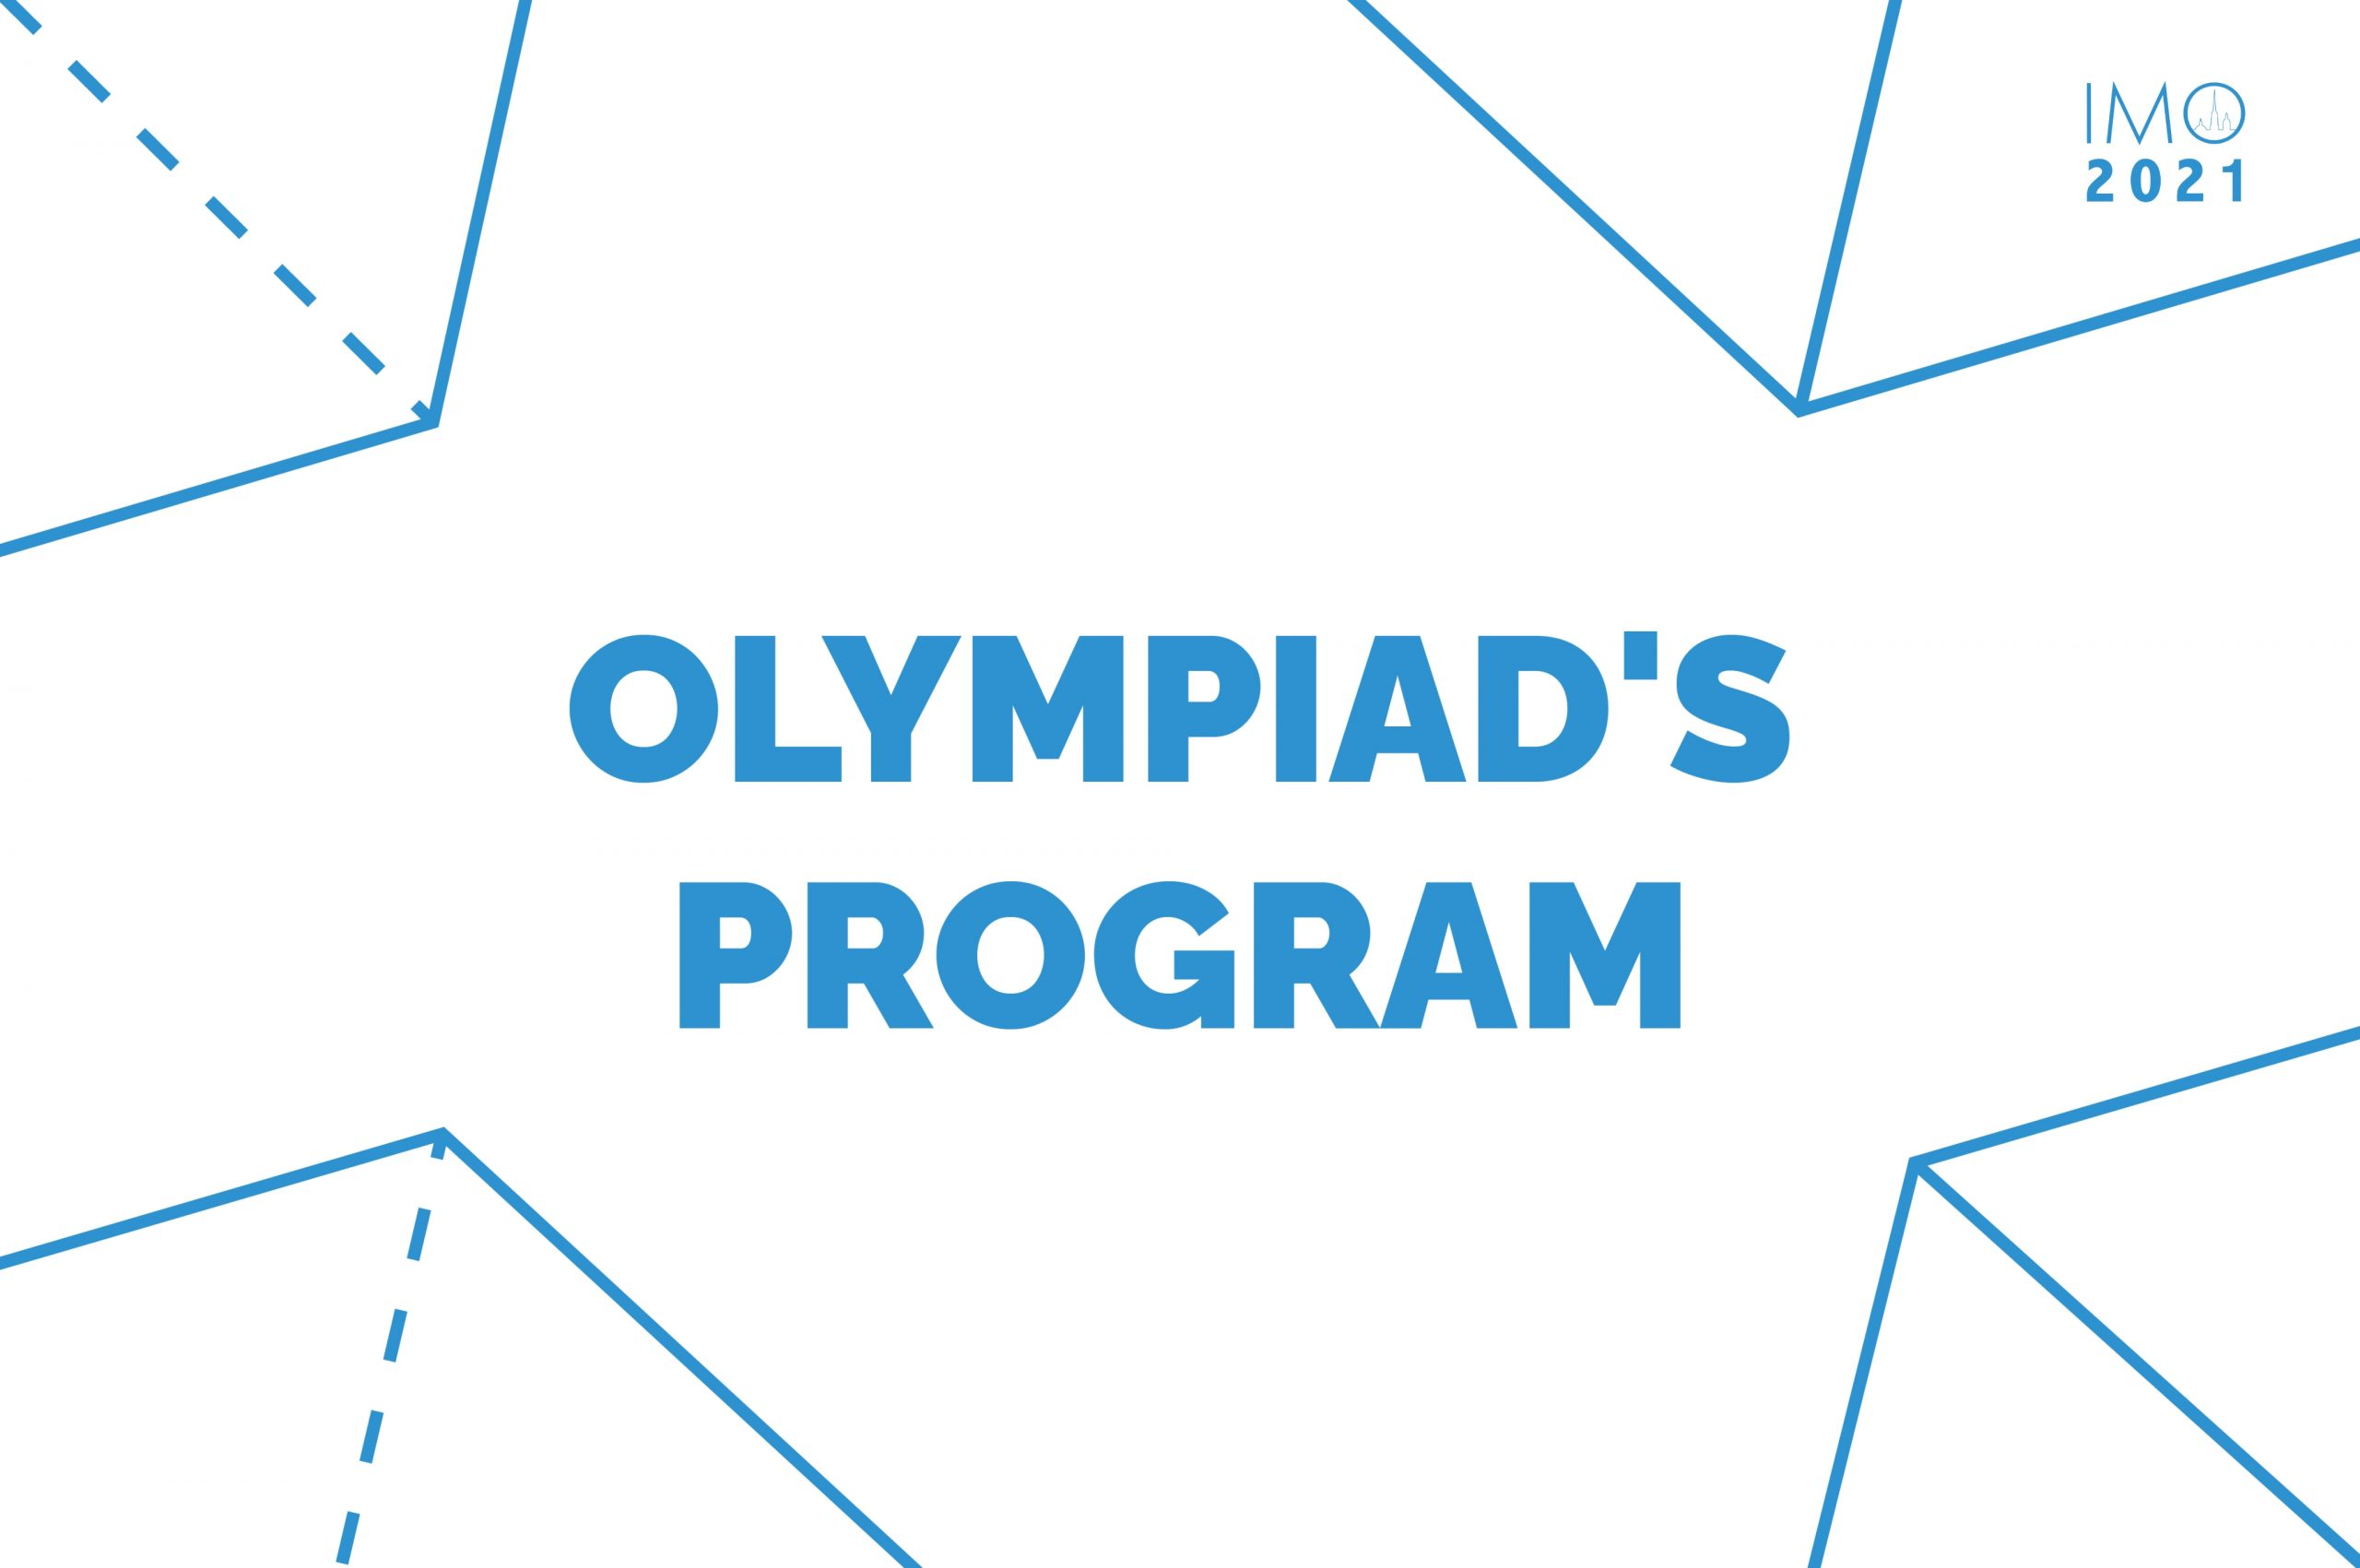 Participants of the 62nd International Mathematical Olympiad will receive lectures with experts and online excursions.